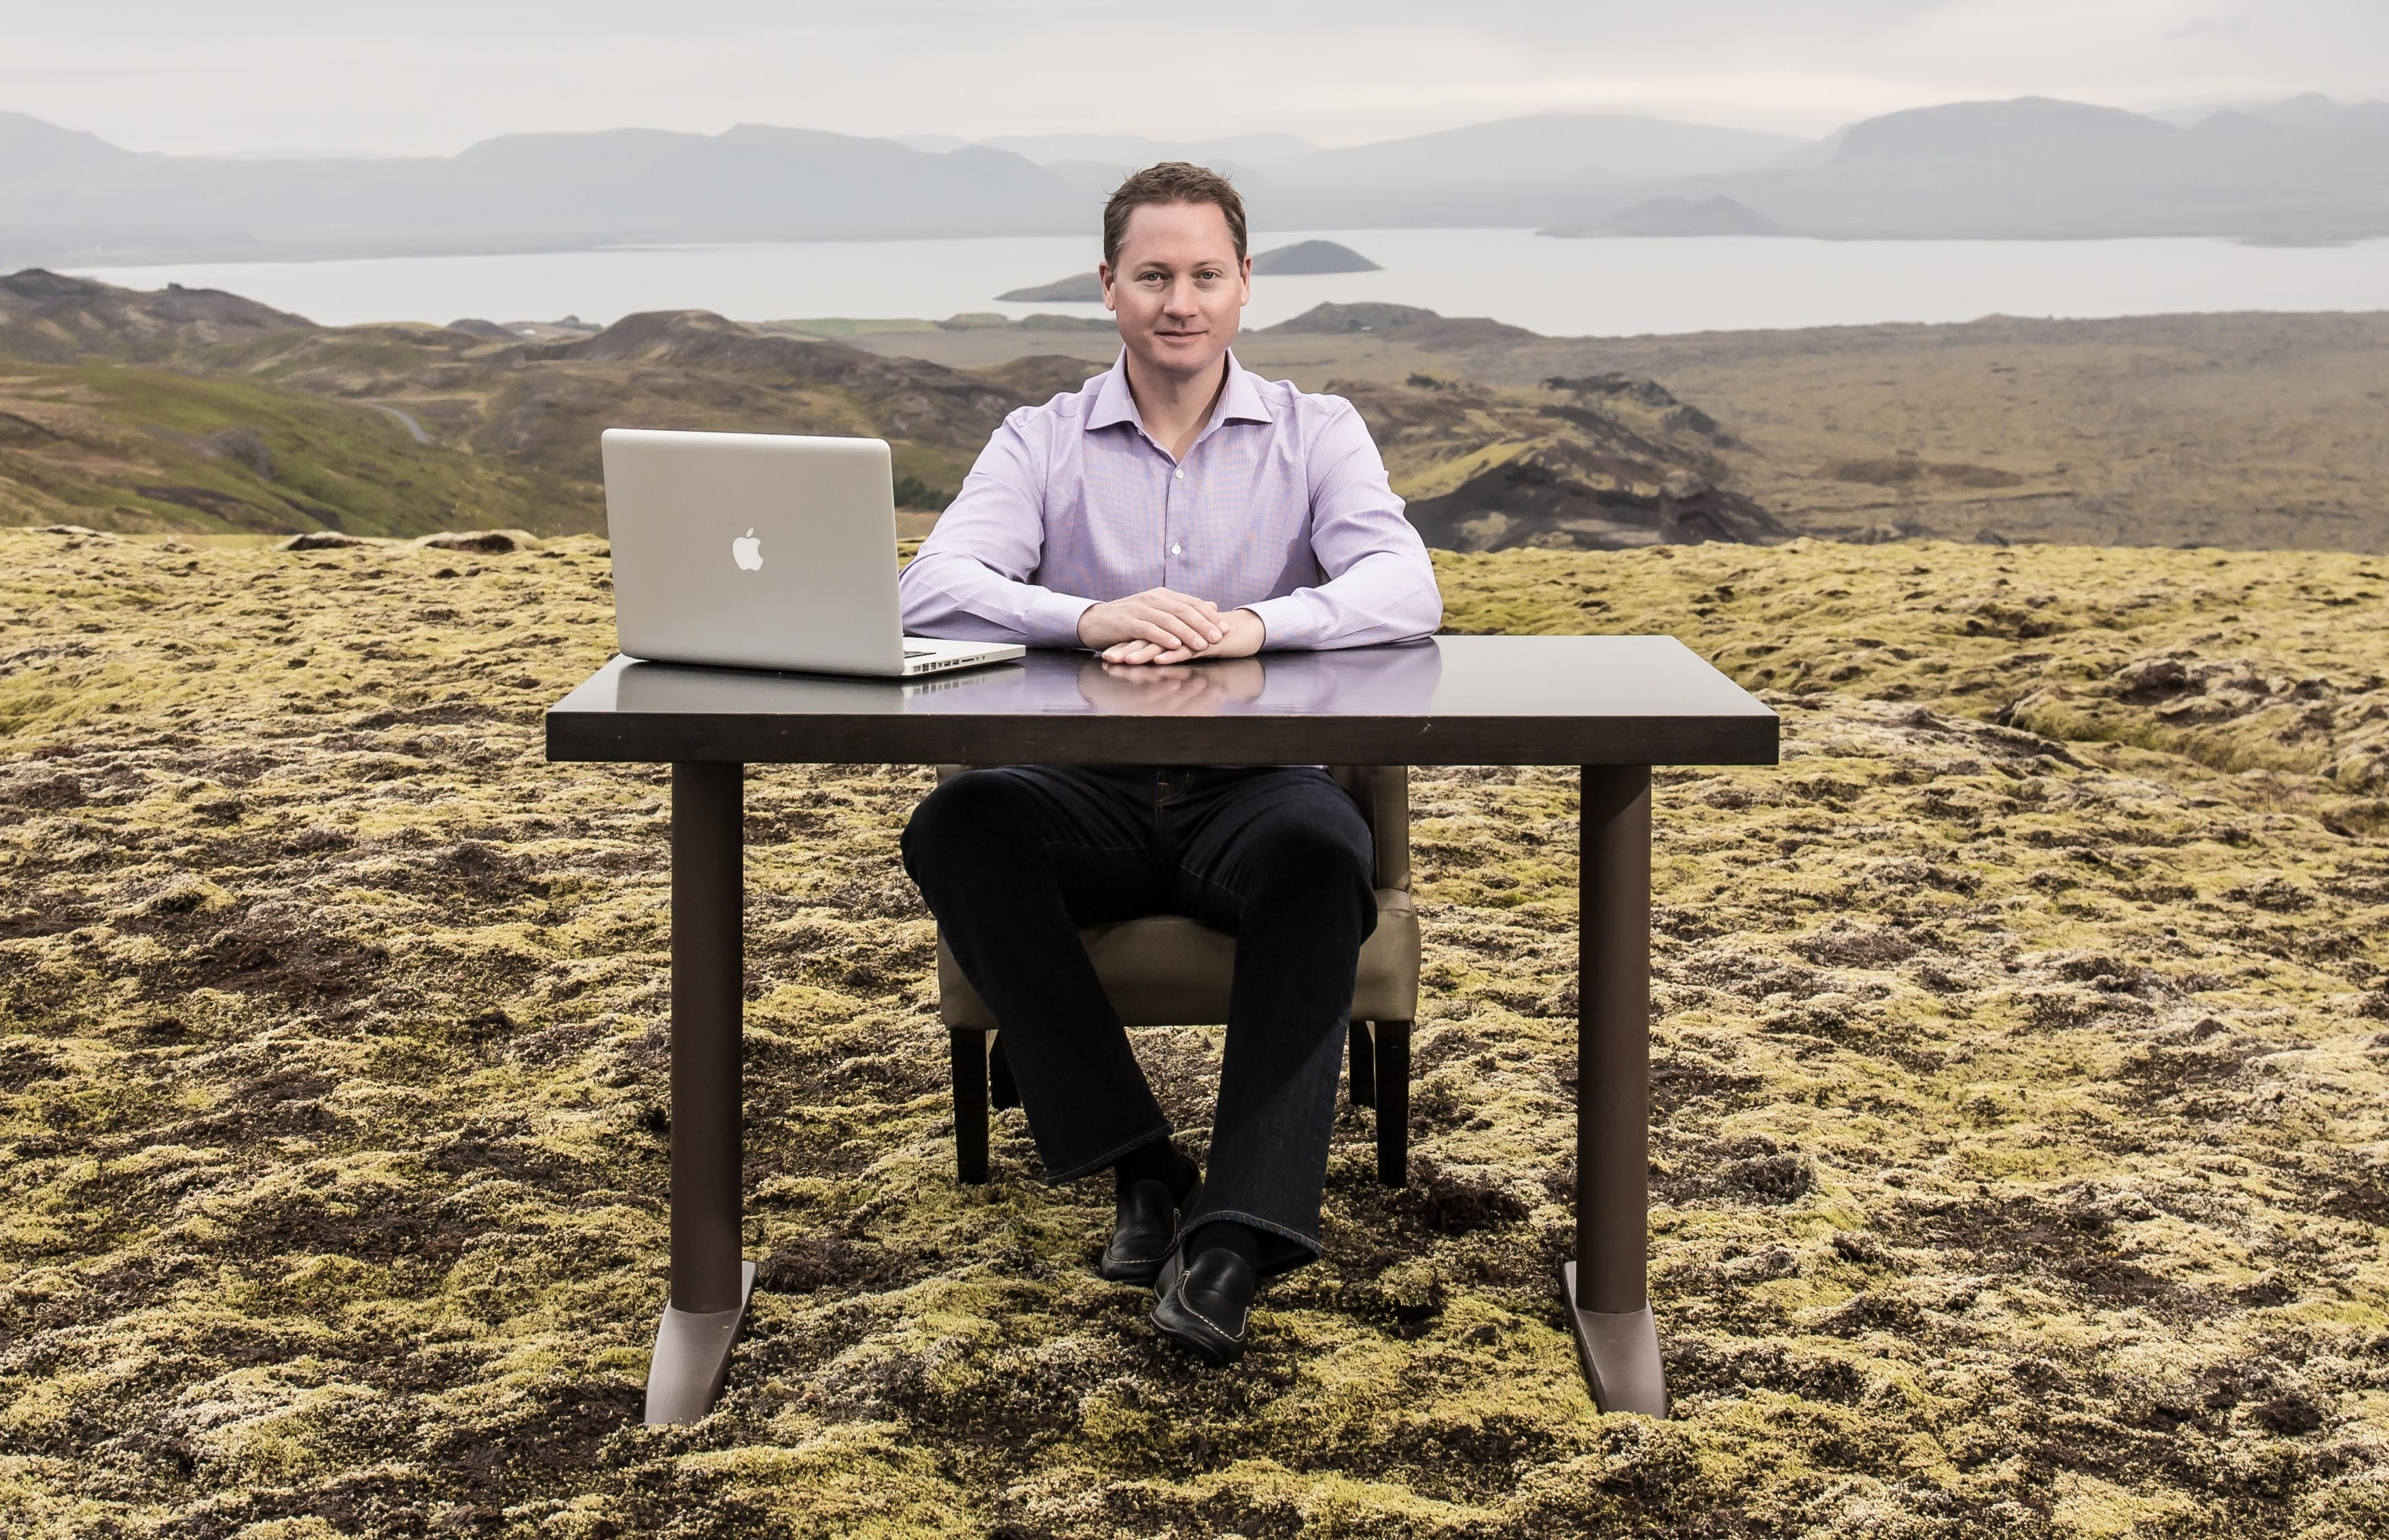 """""""I think the winds will shift,"""" Bryan Johnson says. """"There will be a shift in the kinds of things people aspire to do. Funding and supporting hard problems will become cool in a company in a couple of years."""""""